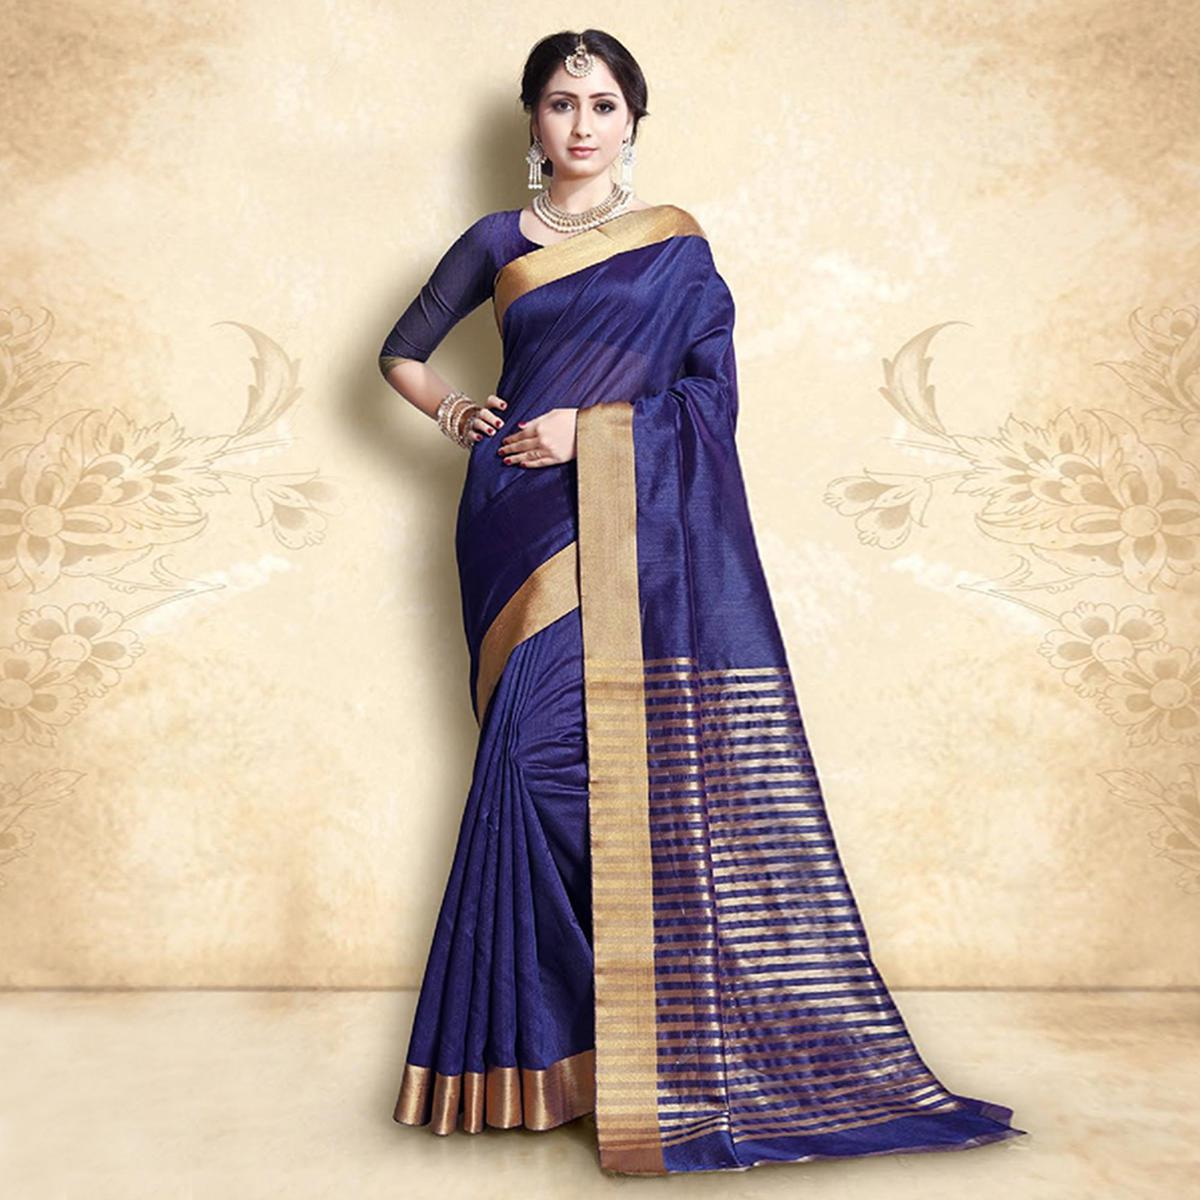 Desiring Navy Blue Colored Festive Wear Cotton Silk Saree